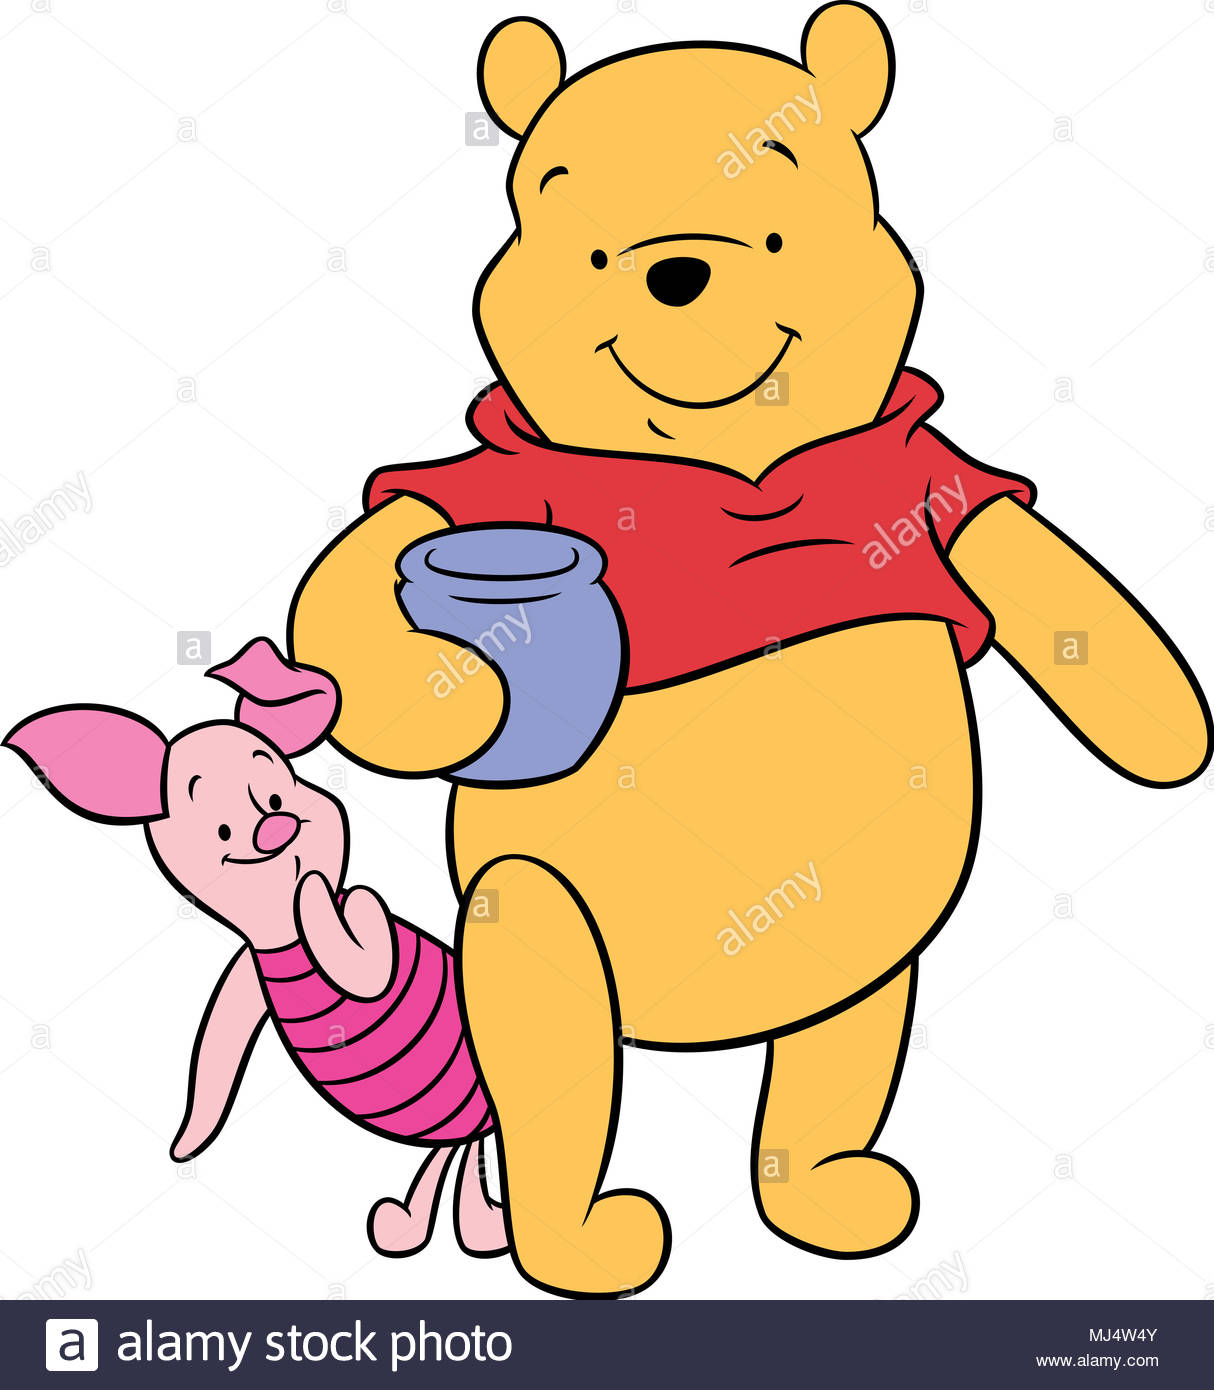 Winnie The Pooh Isolated Imágenes De Stock & Winnie The Pooh ...